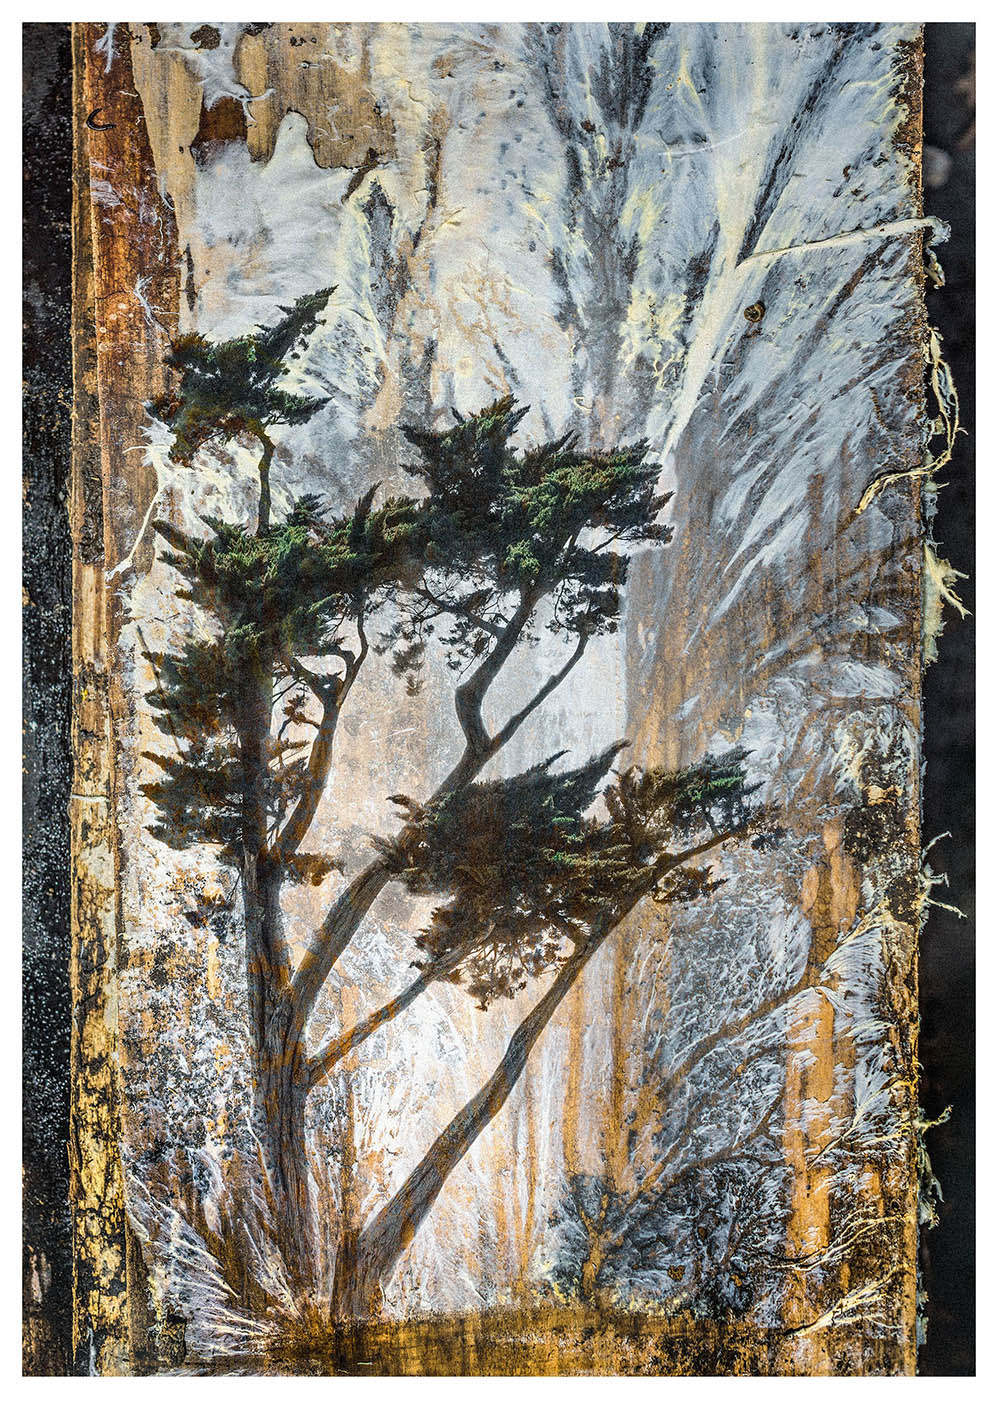 Photographed white wood fungus with an overlaid pine tree make this composite photograph form a new landscape prehaps a little Japanese in style